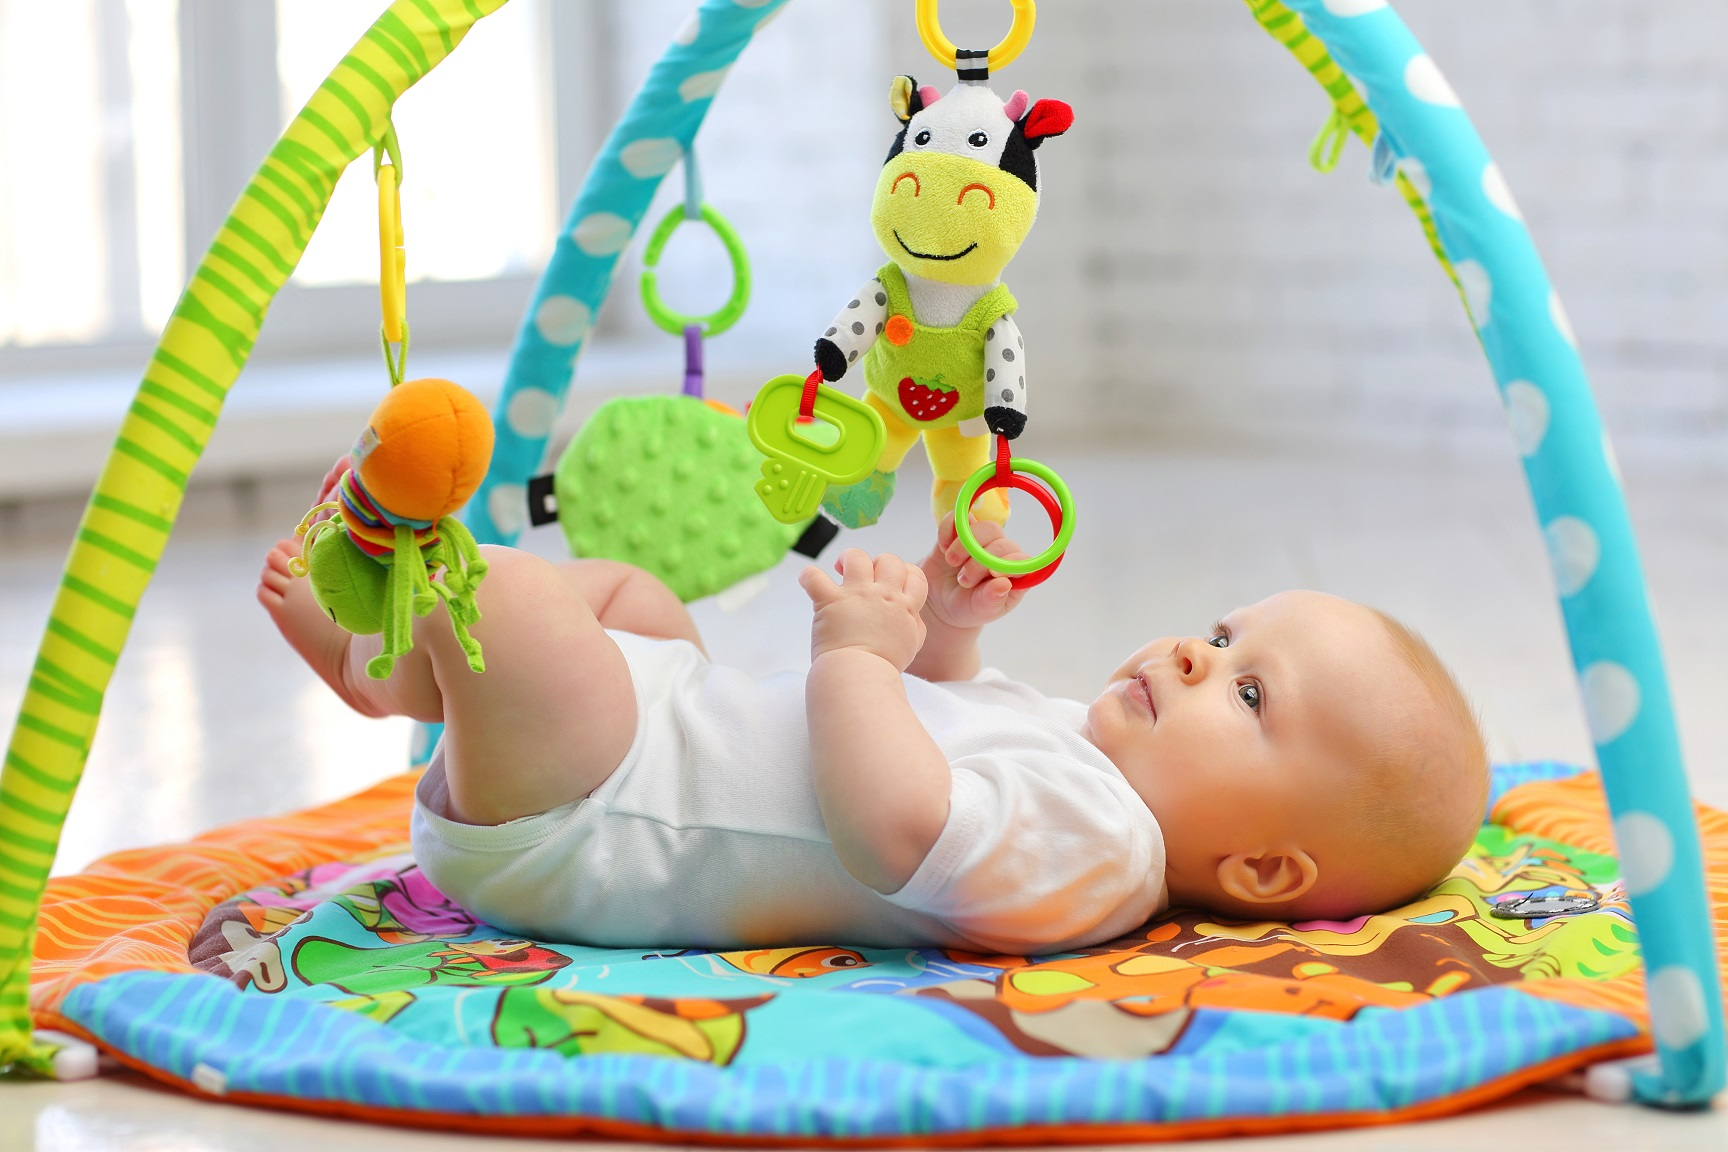 Easy Ways to Stimulate Your Baby's Senses